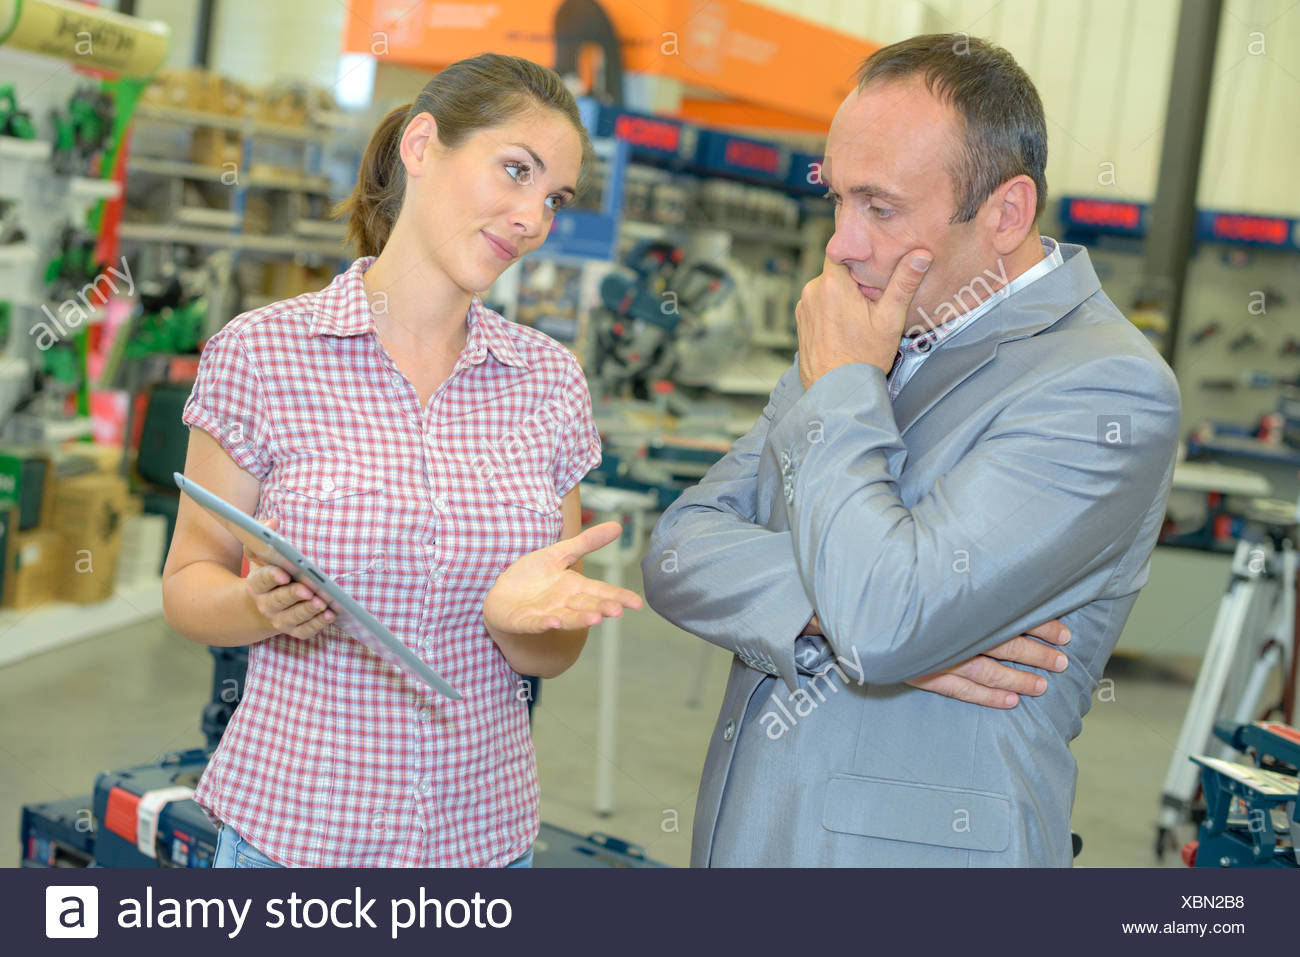 Lady holding tablet, trying to persuade man - Stock Image